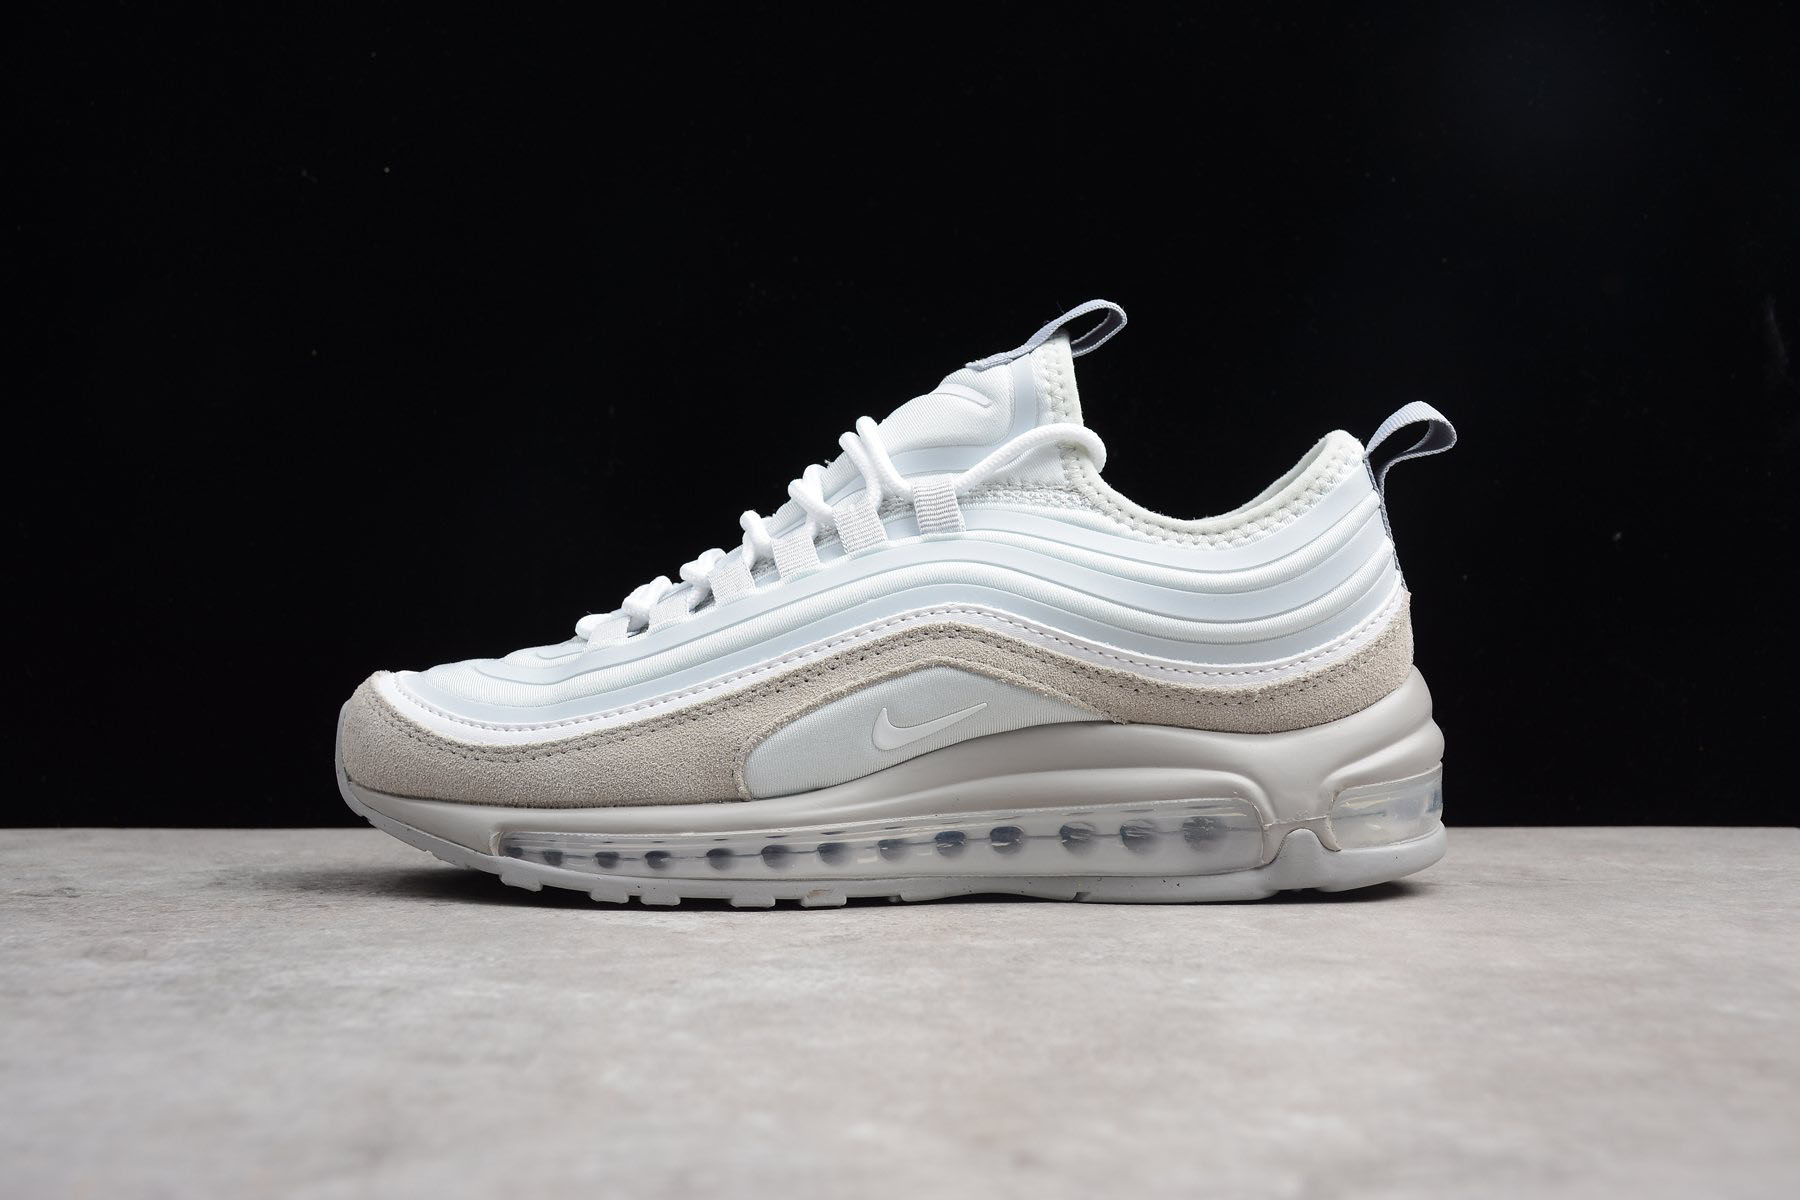 Men's Size Nike Air Max 97 Ultra SE Pure Platinum White Wolf Grey 924452-002